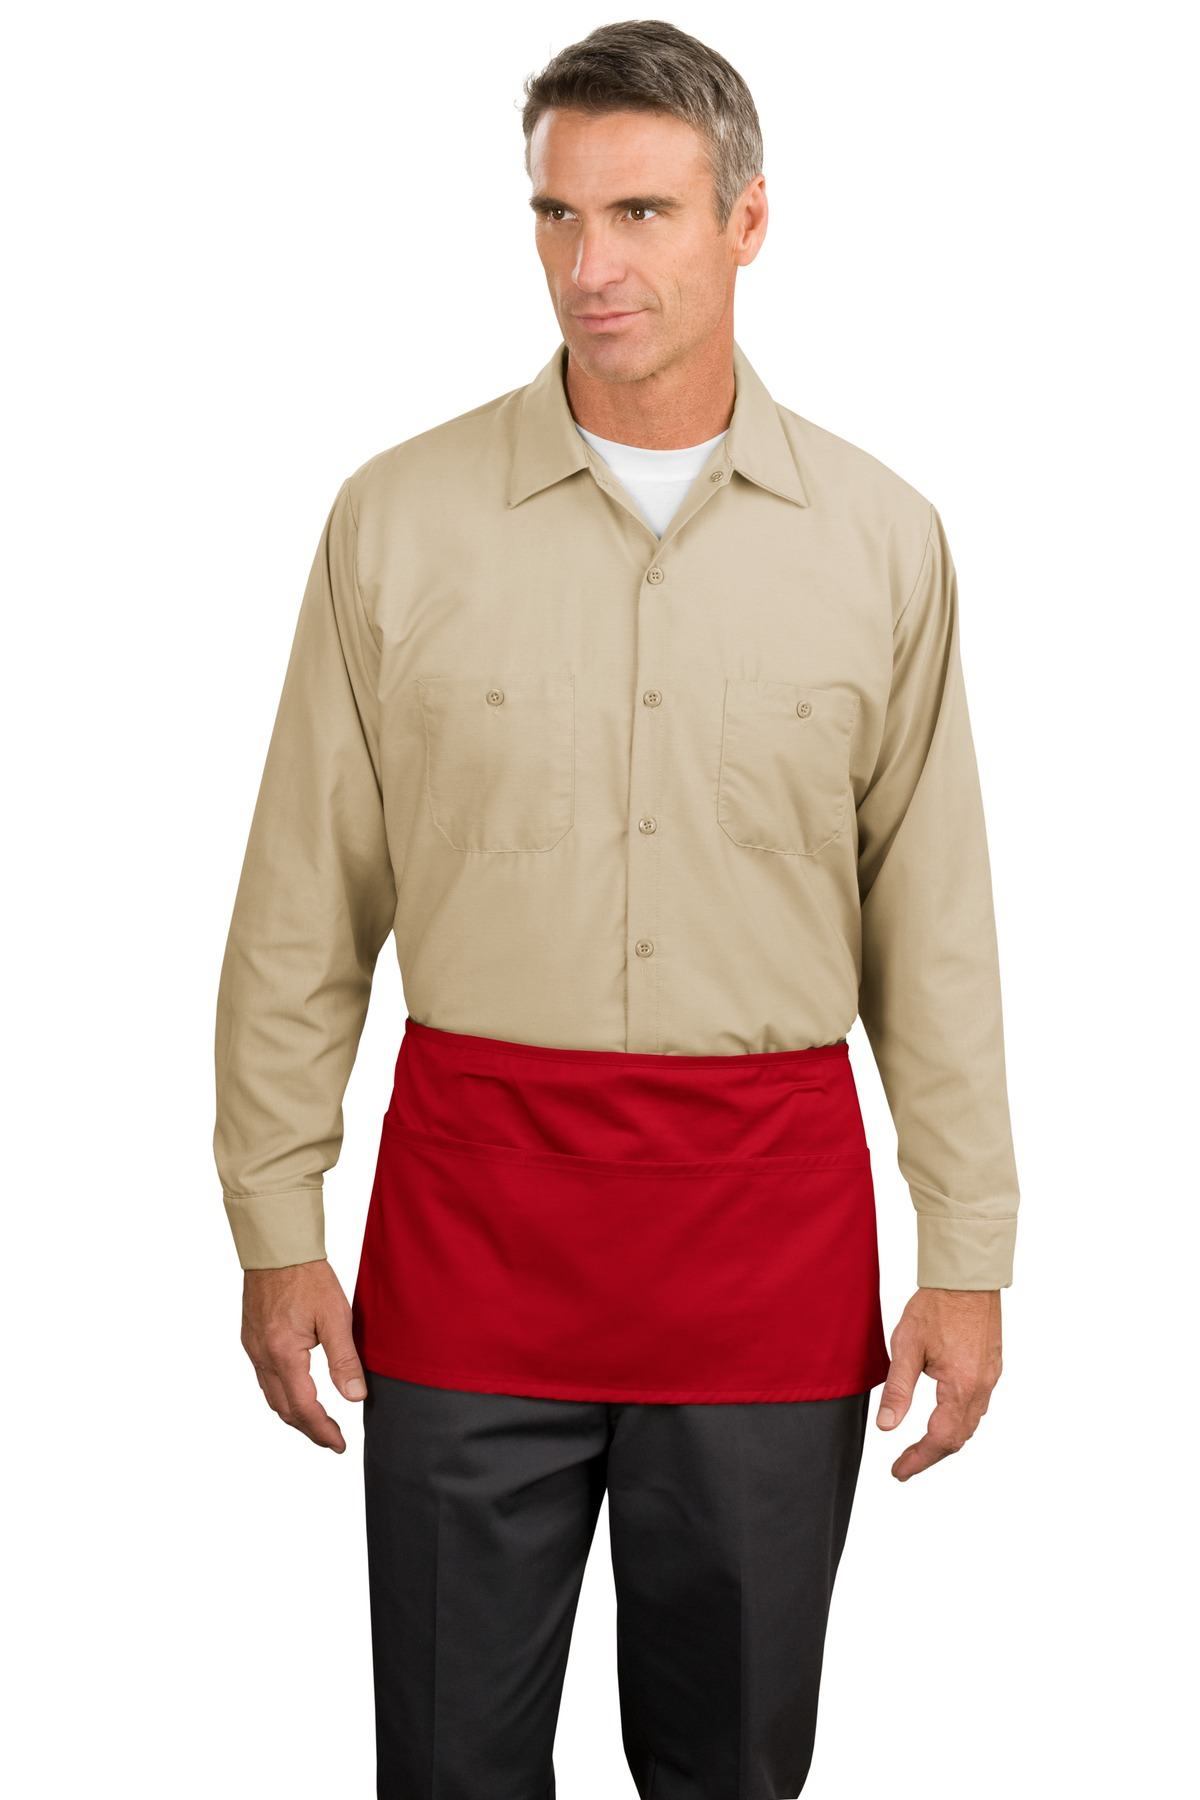 Port Authority - Waist Apron with Pockets.A515